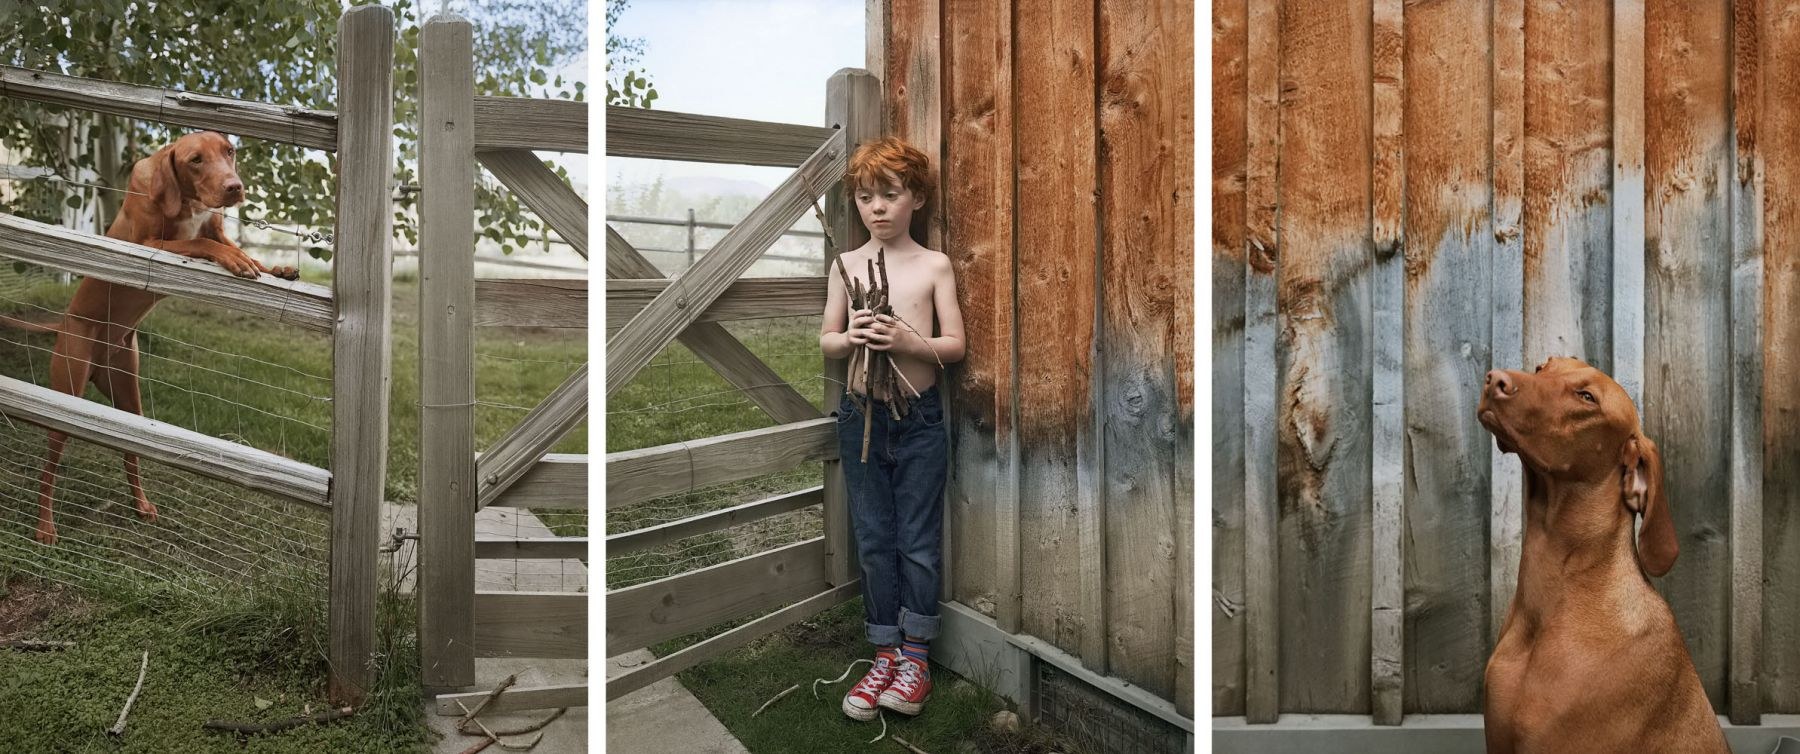 Still with Sticks, 2013. Three-panel archival pigment print, available as 24 x 60 or 40 x 90 inches.